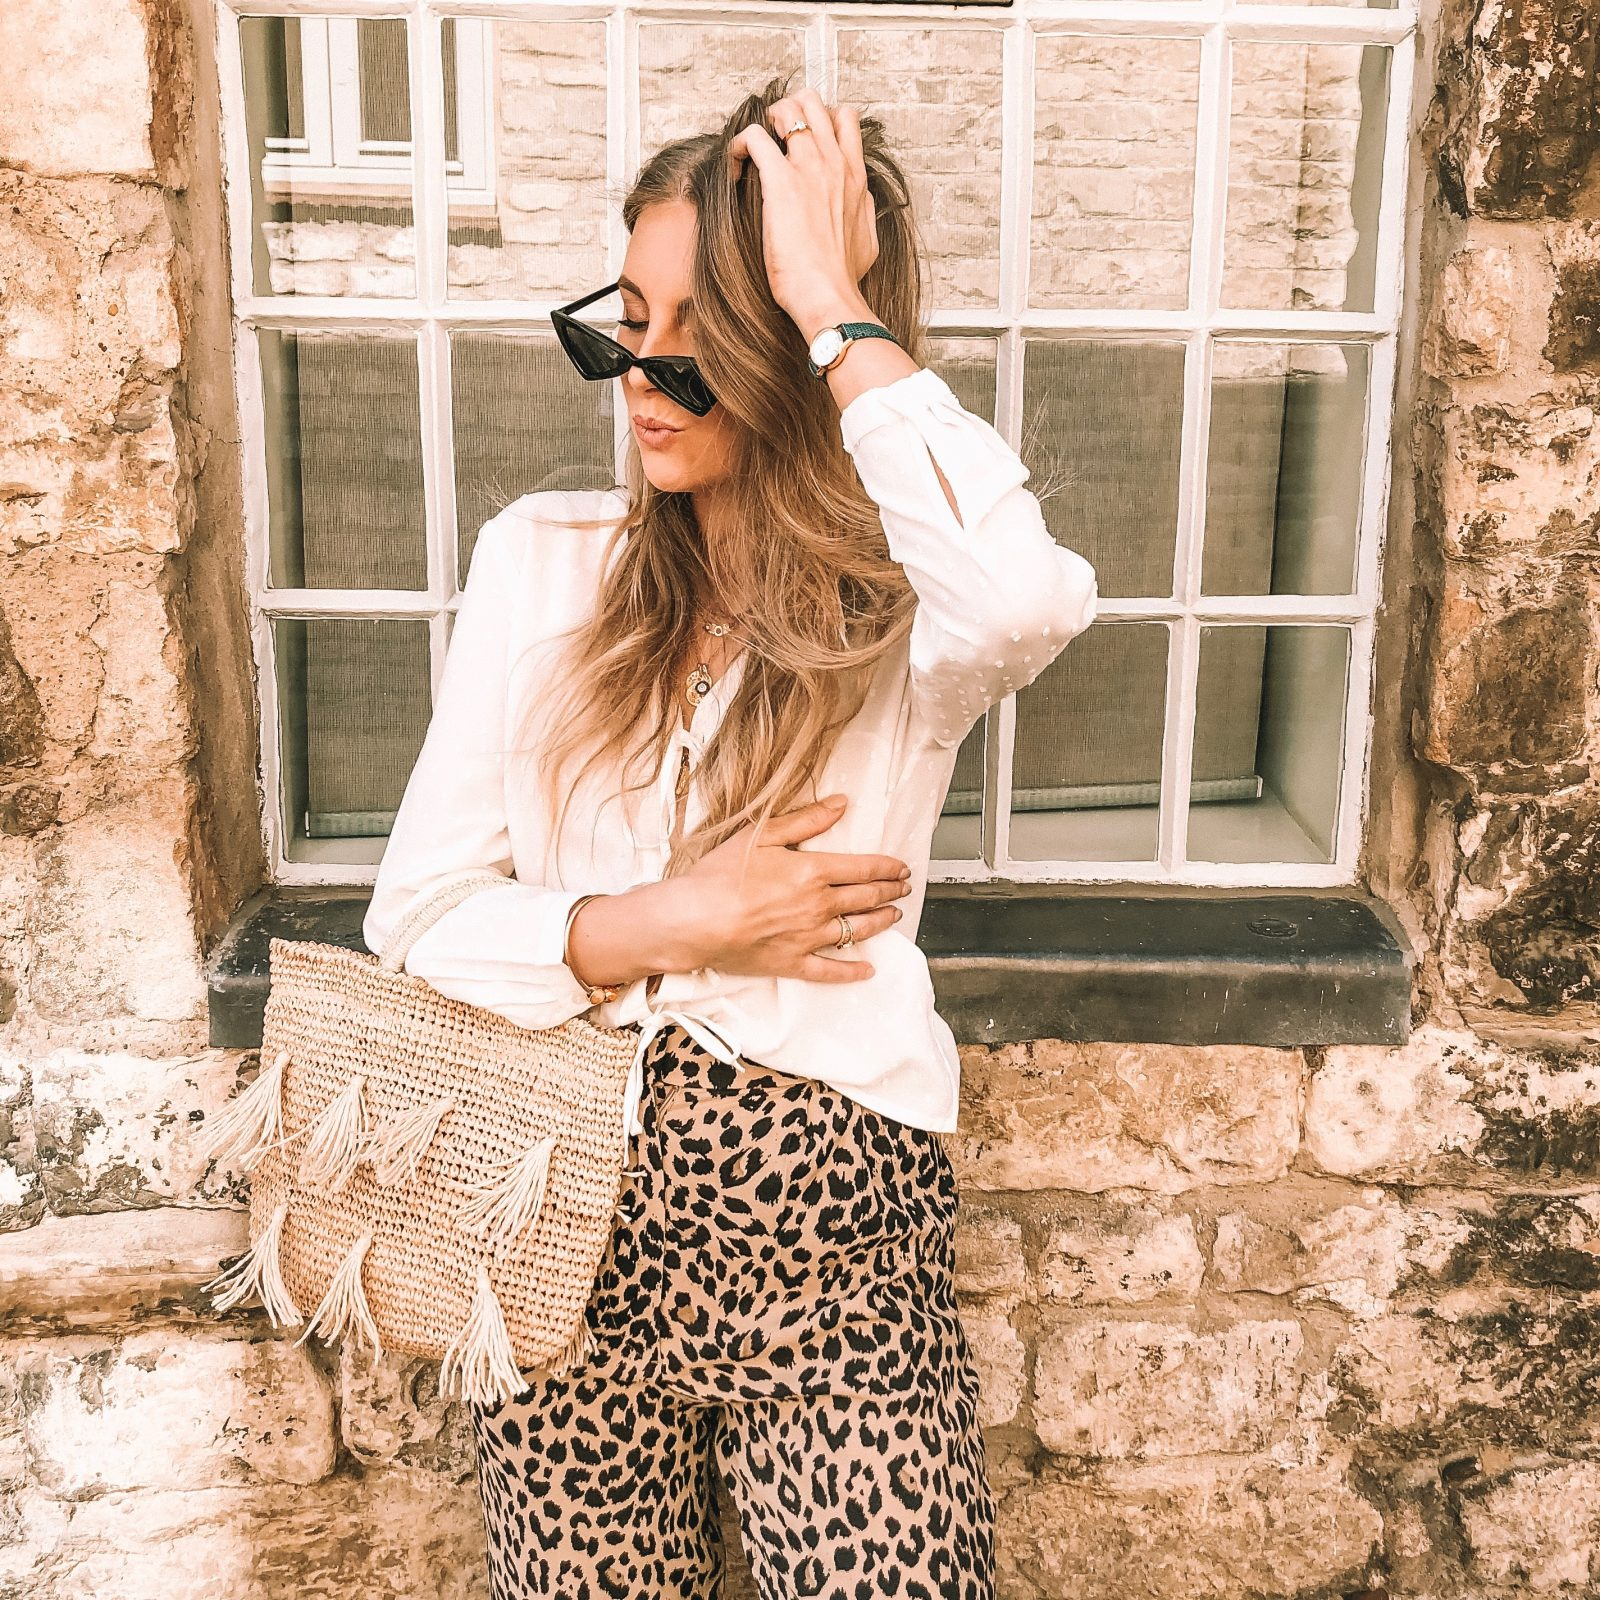 Leopard Print Trousers Summer Outfit Ideas